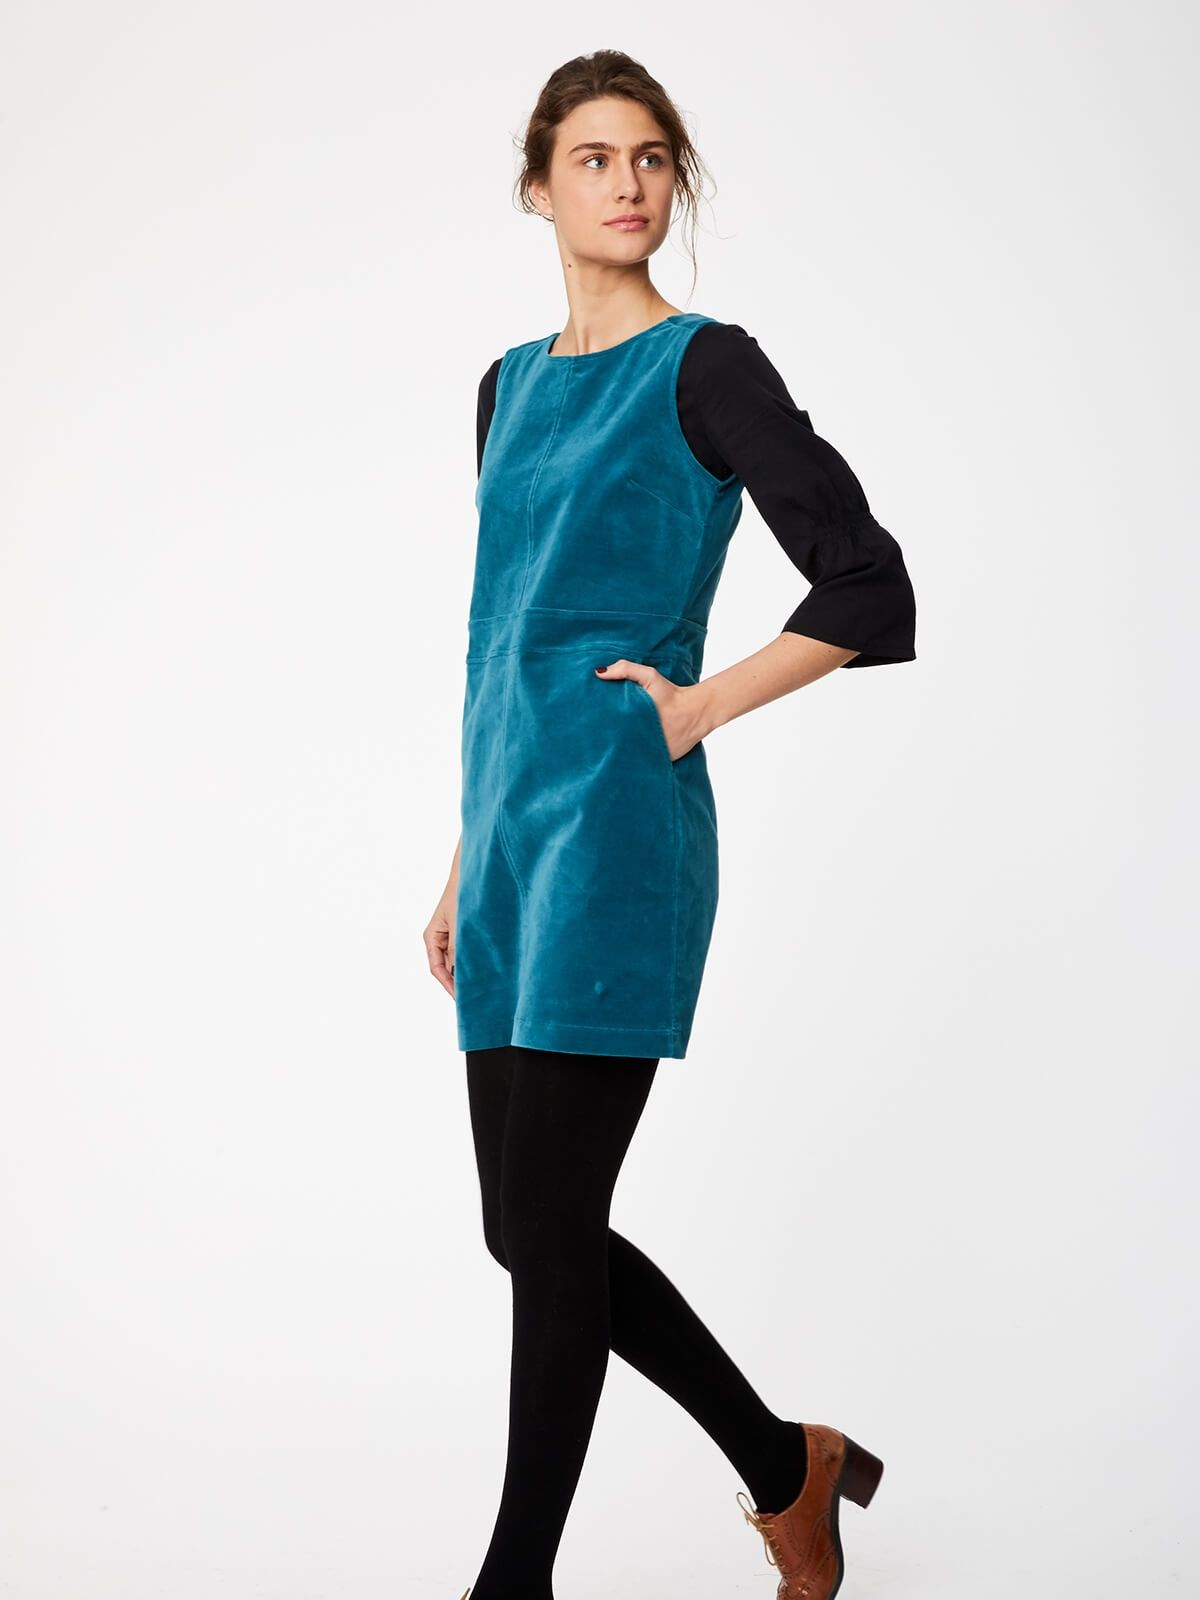 wwd3965-kingfisher--teal-organic-cotton-pinafore-dress-with-pockets-0001.jpg.jpg